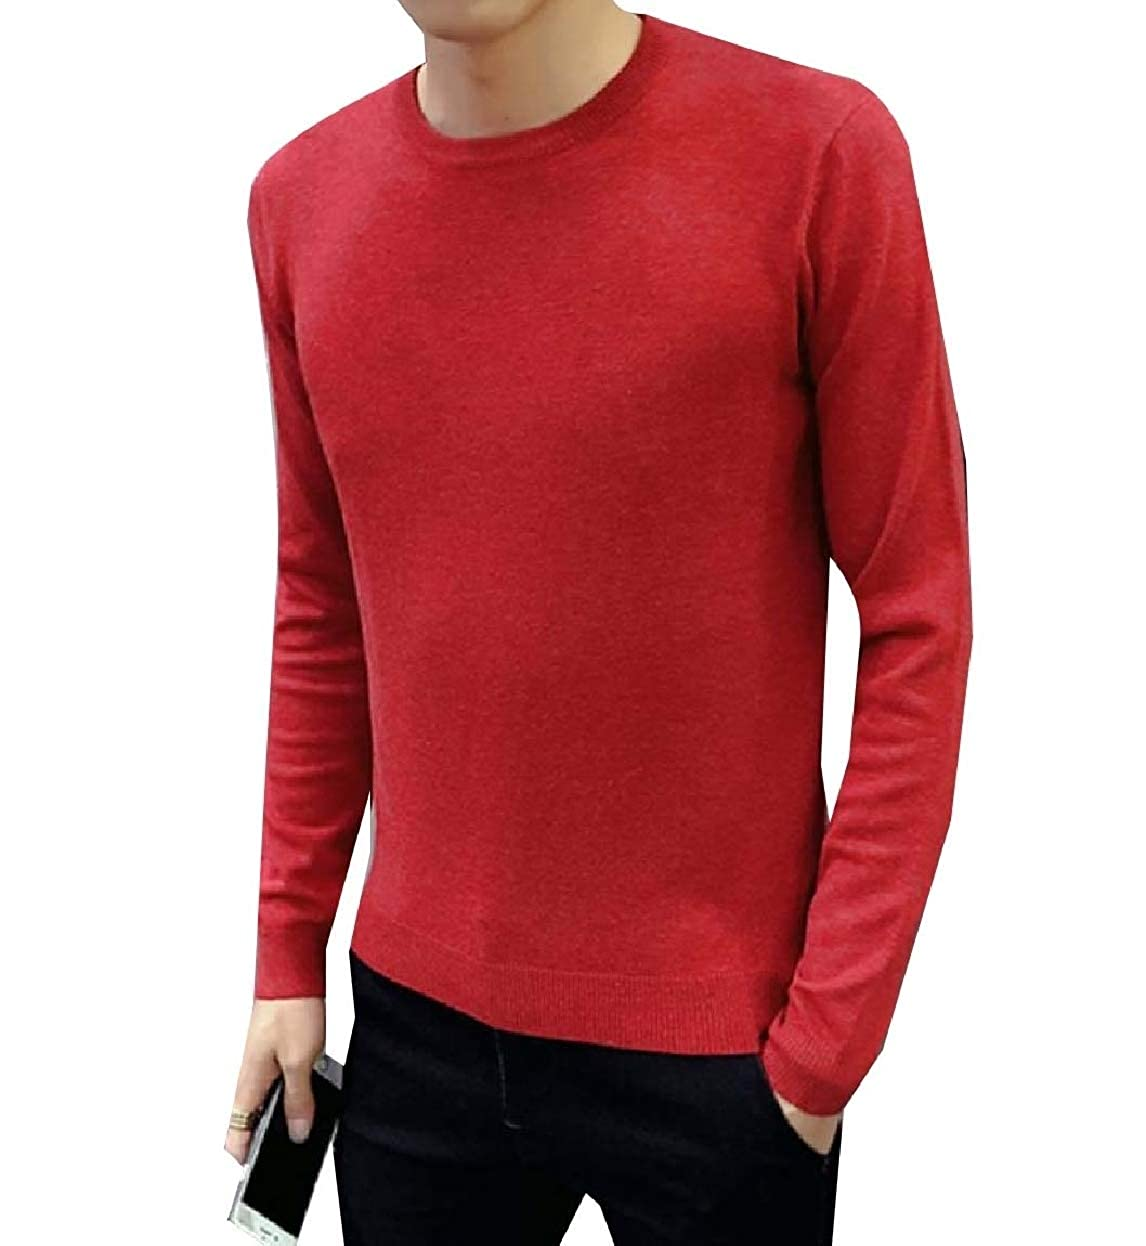 Zimaes-Men Knit Crewneck Classic-Fit Autumn Fit Solid Sweater Blouse